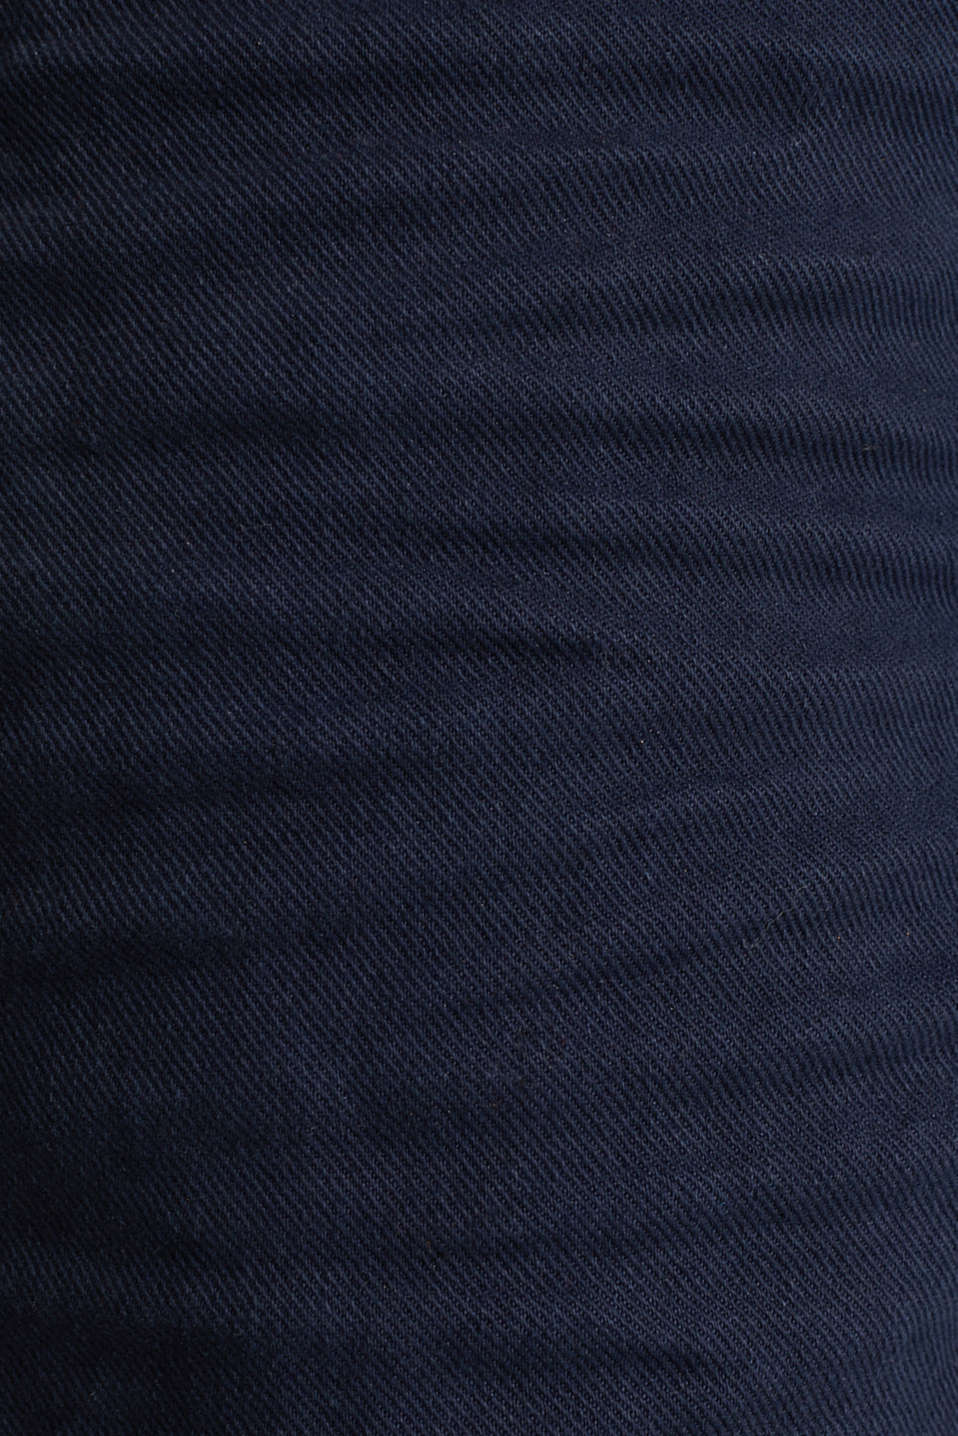 Stretch trousers with a fashionable fit, NAVY, detail image number 4